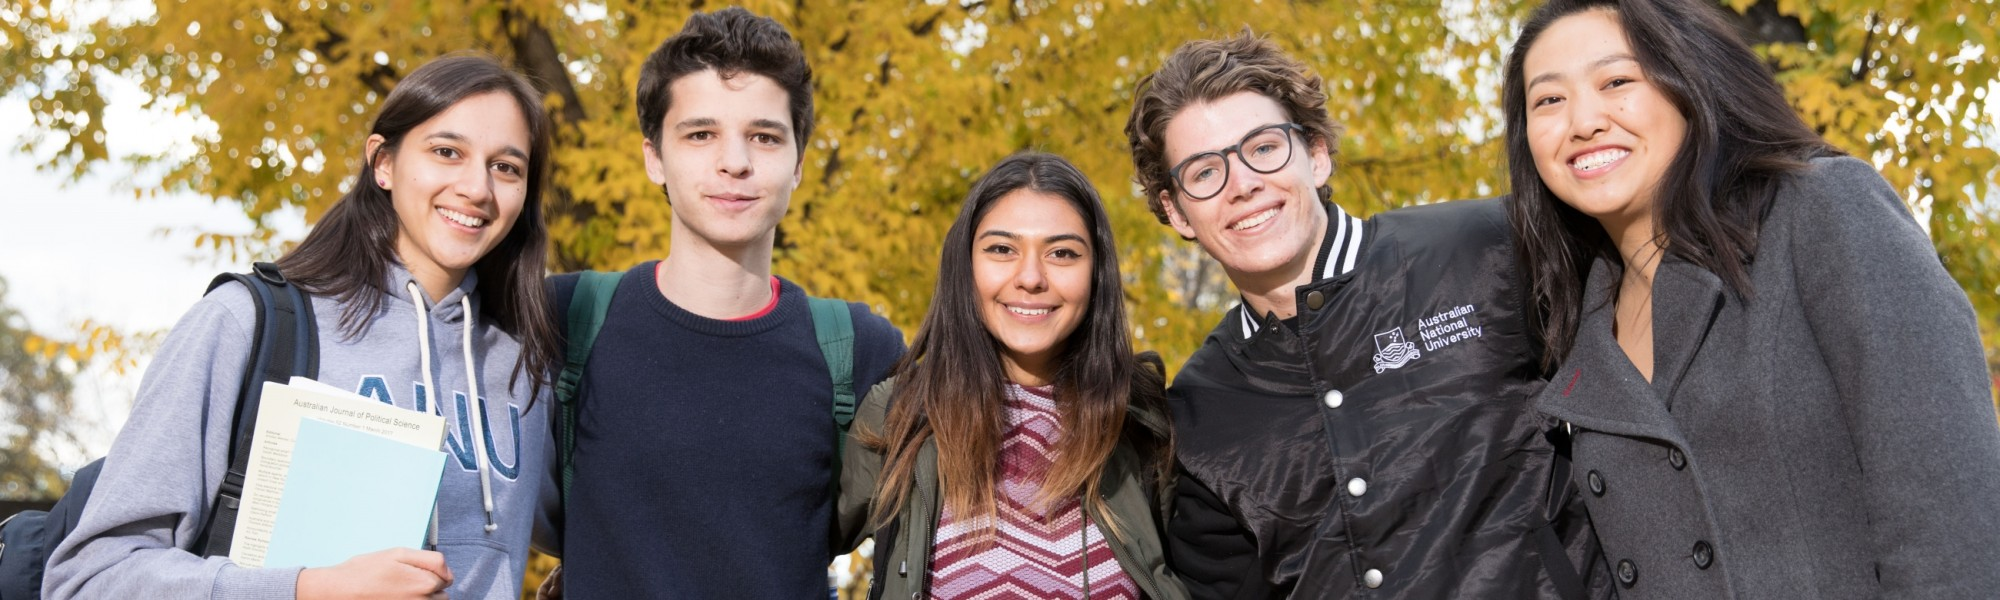 5 ANU students smiling